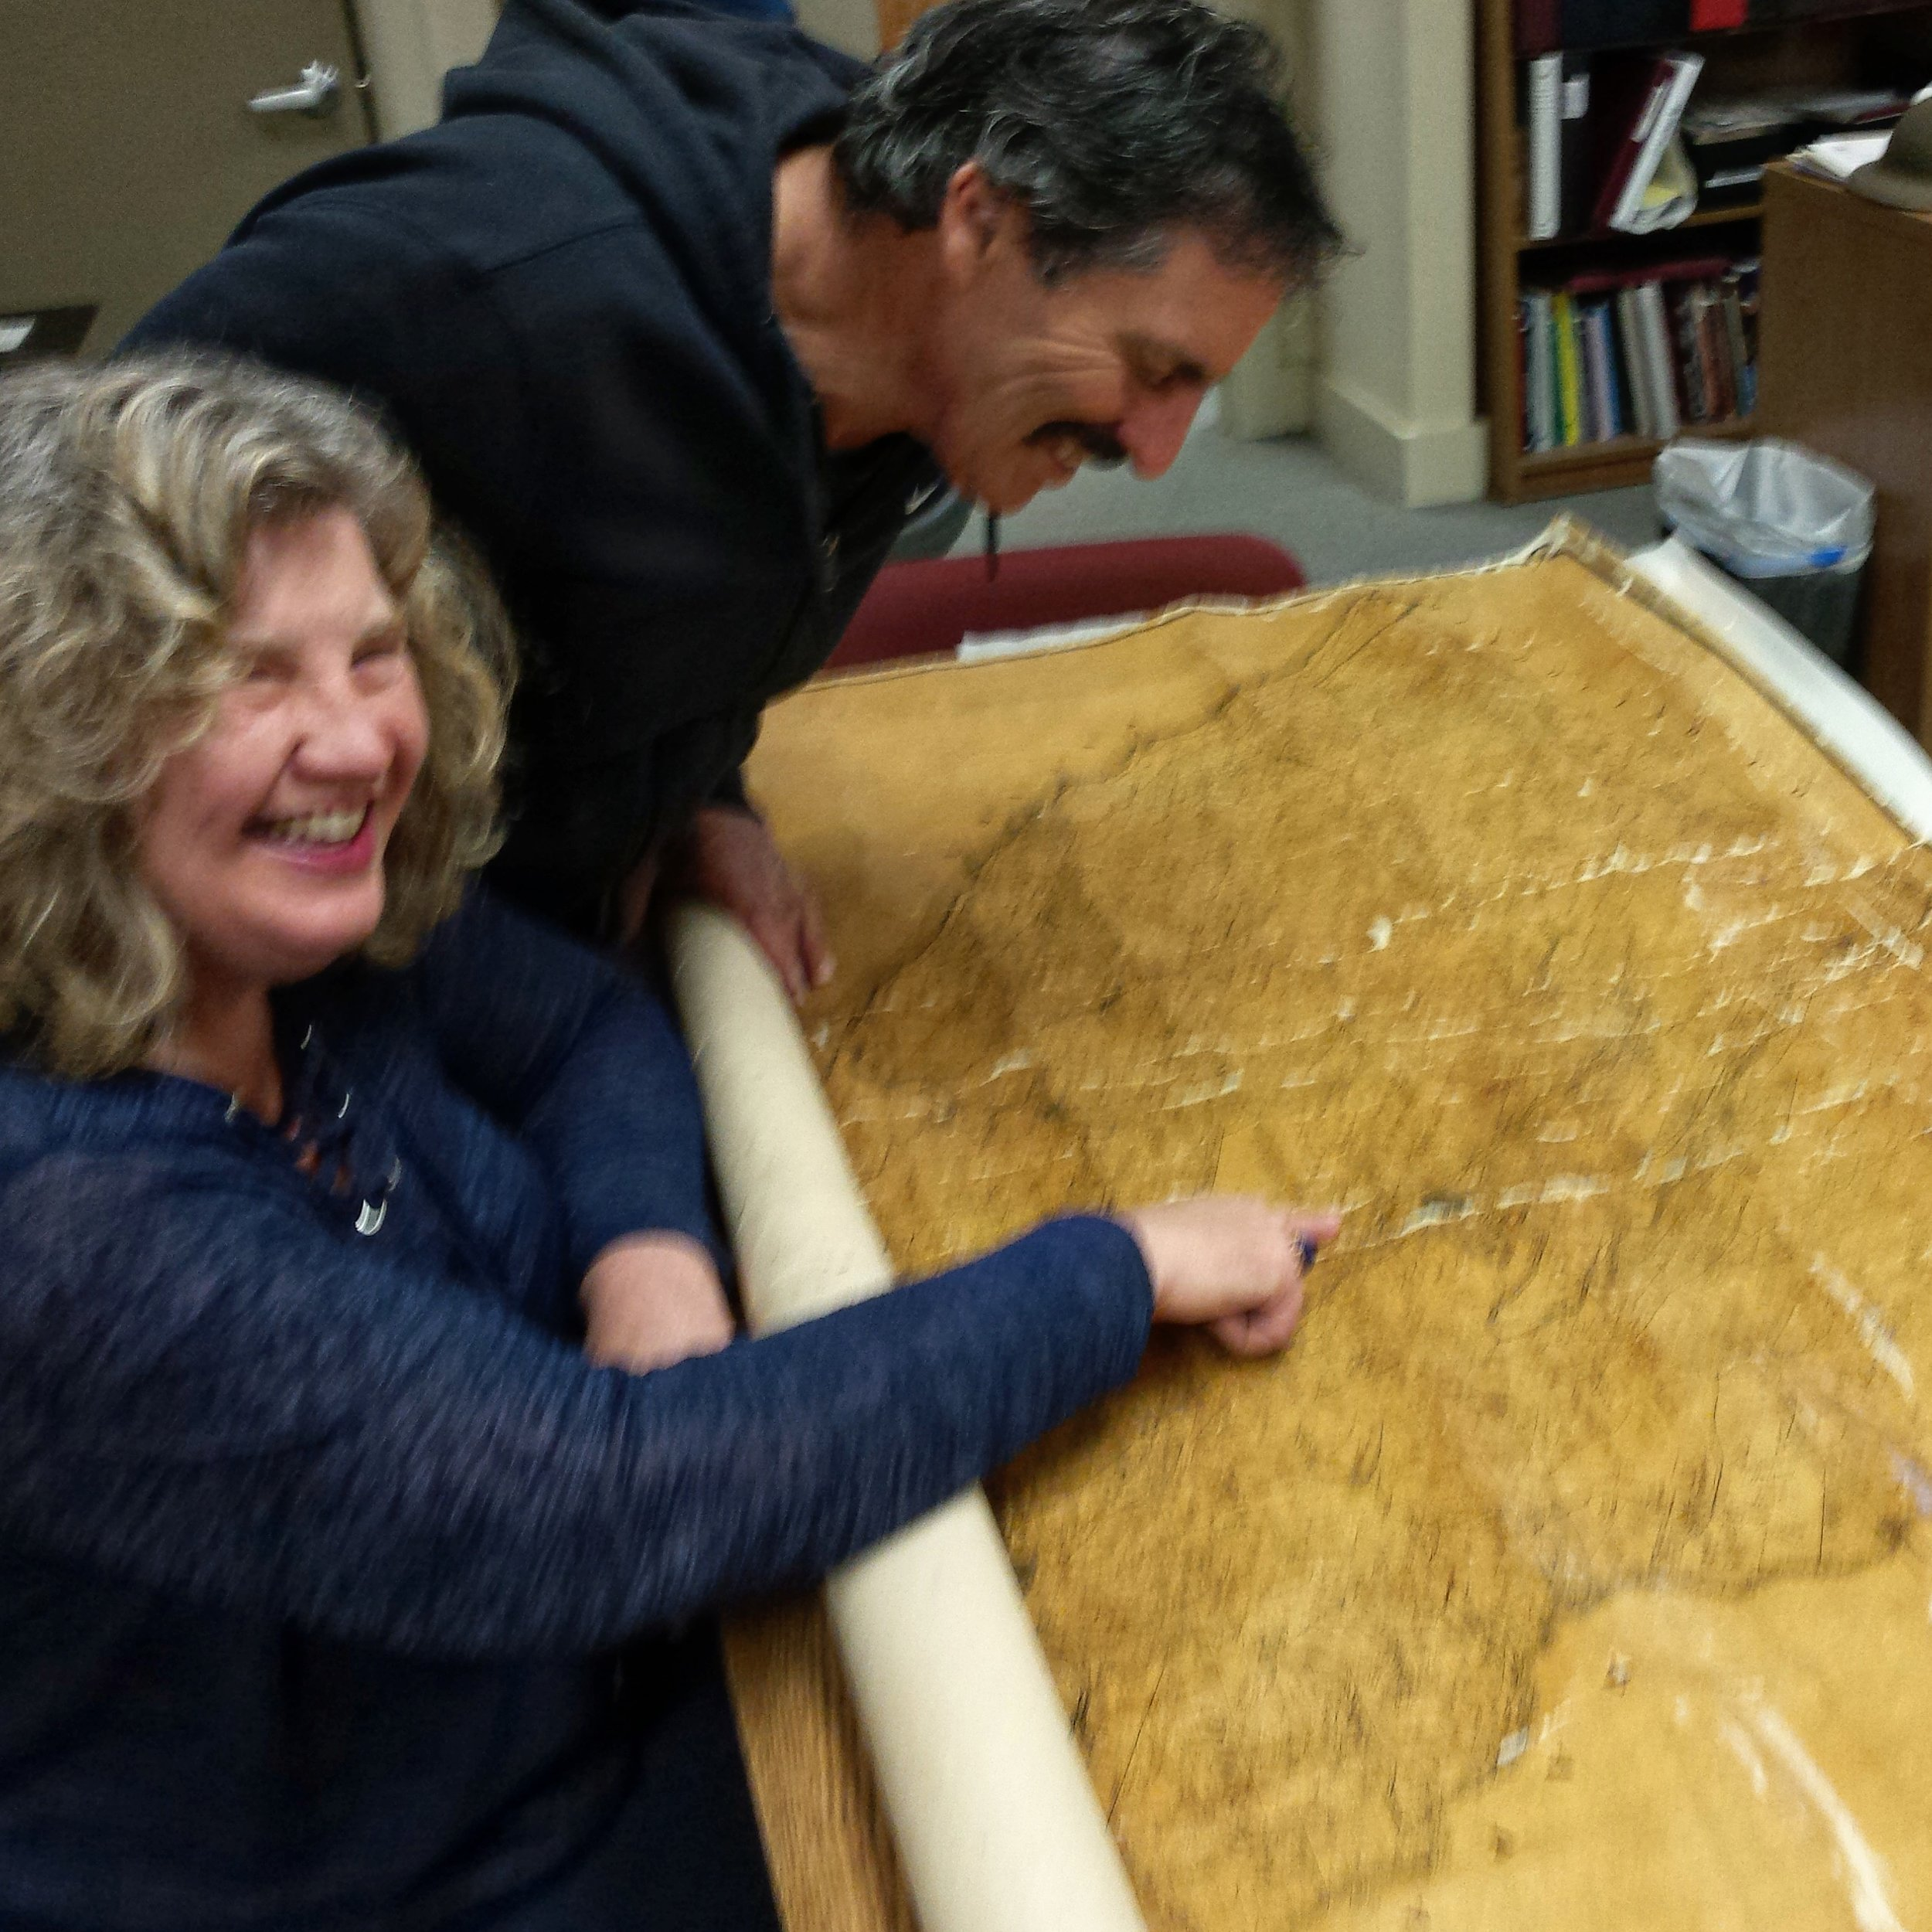 Holly Hoods with Doug Rafanelli with historic map at Healdsburg Museum 2017